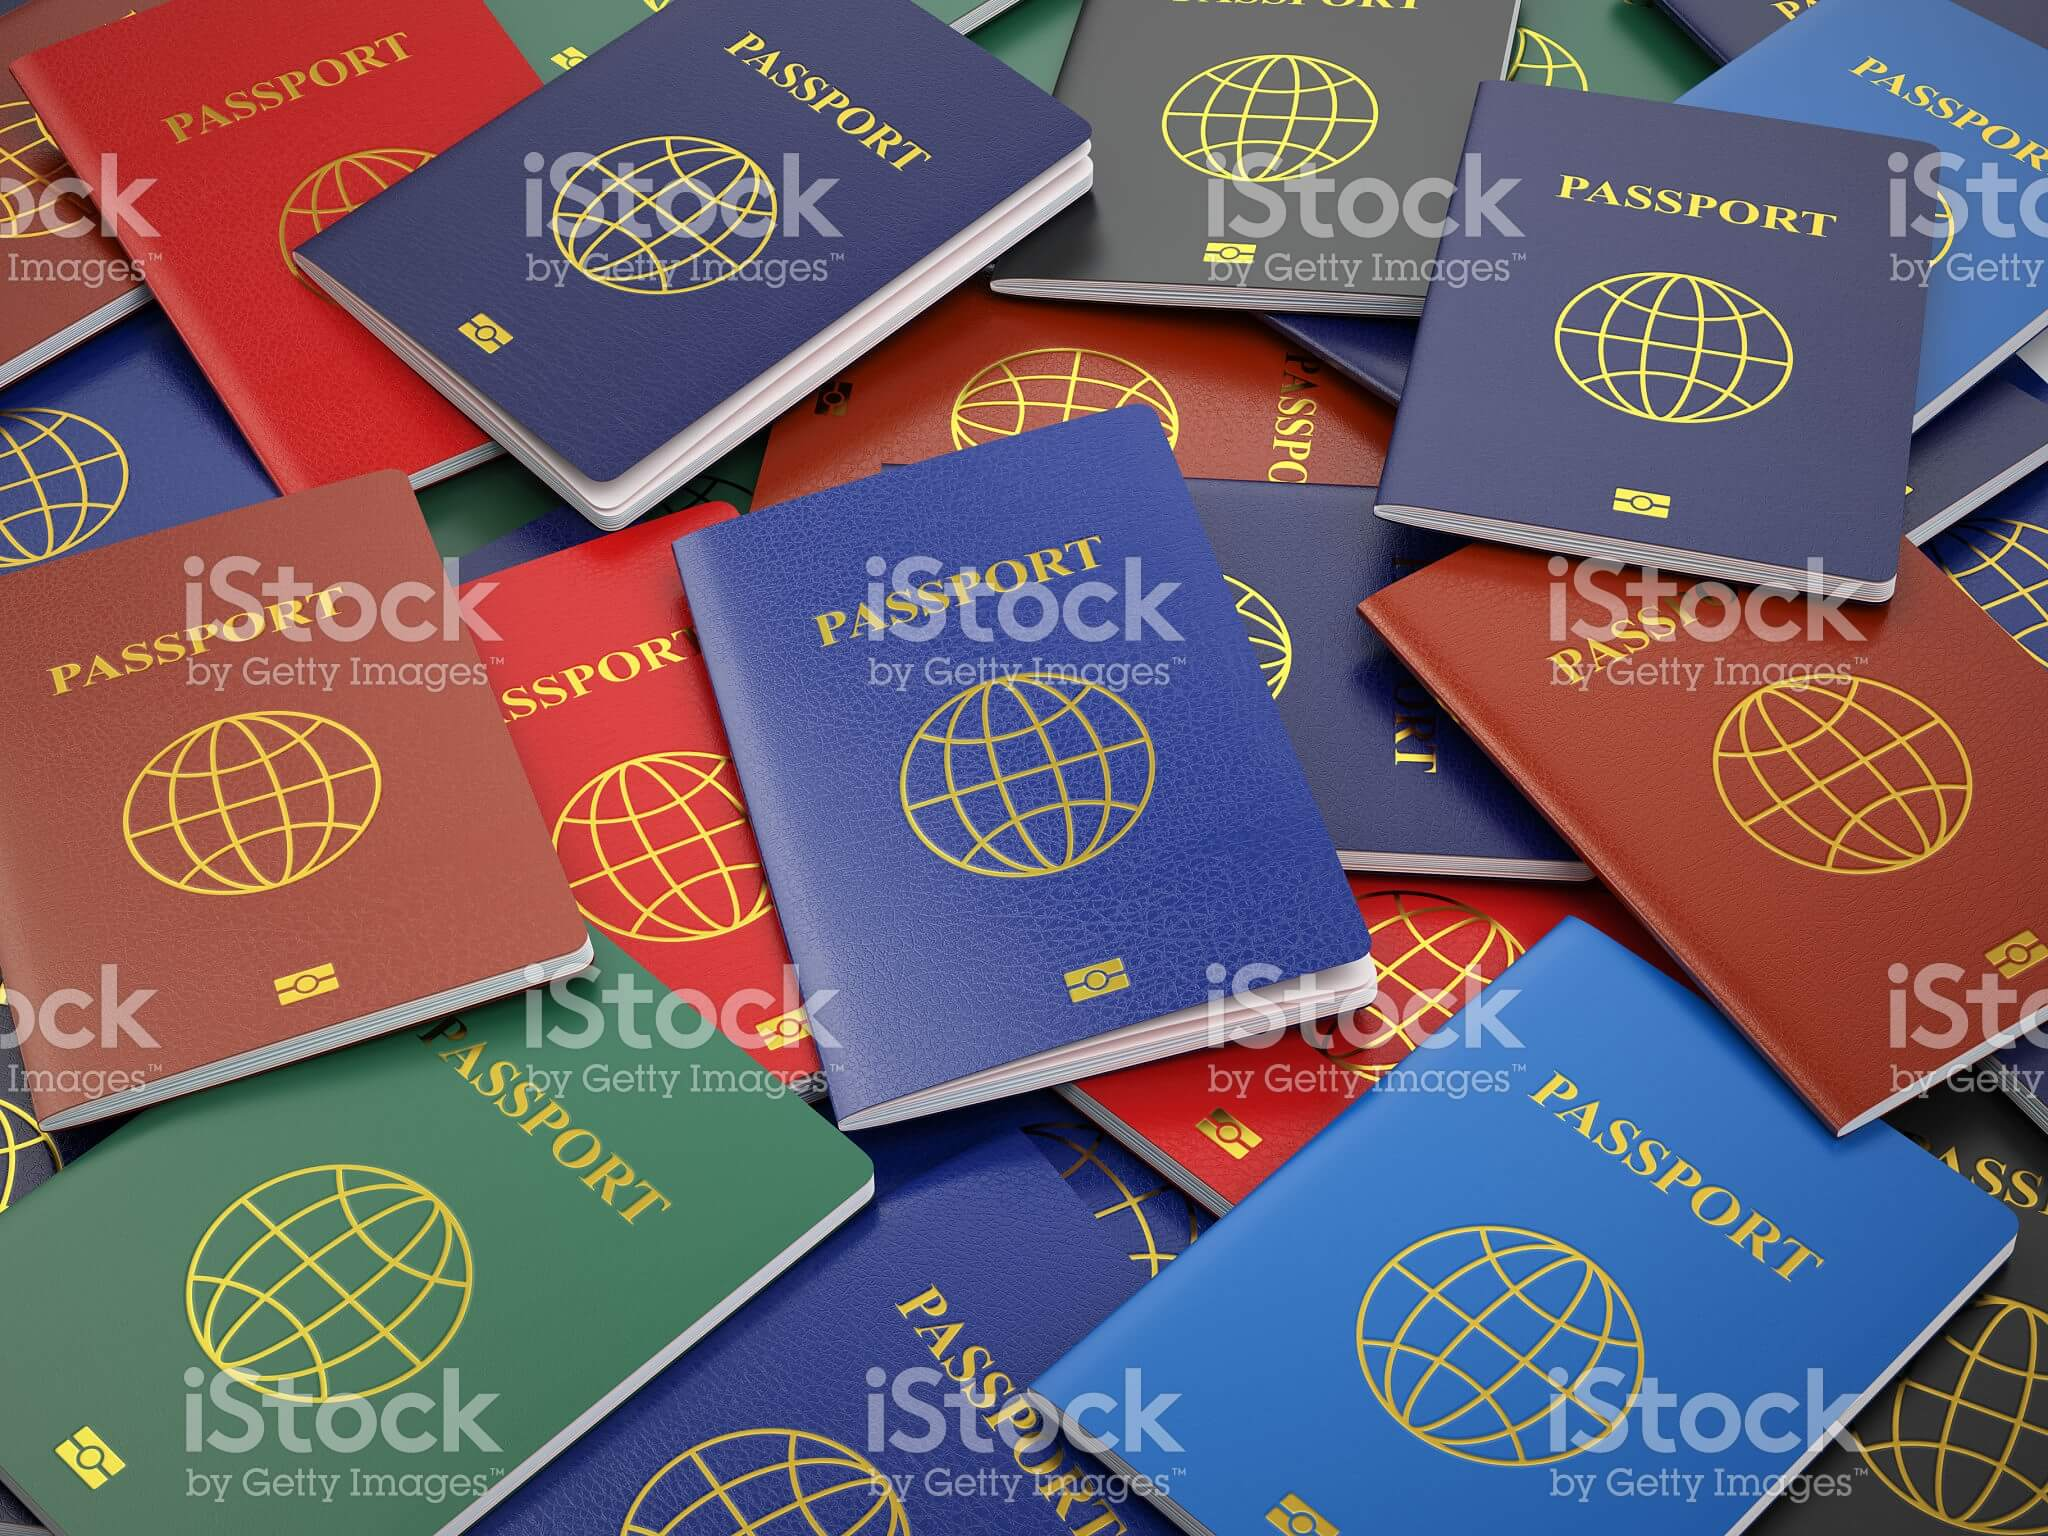 How to increase passport power